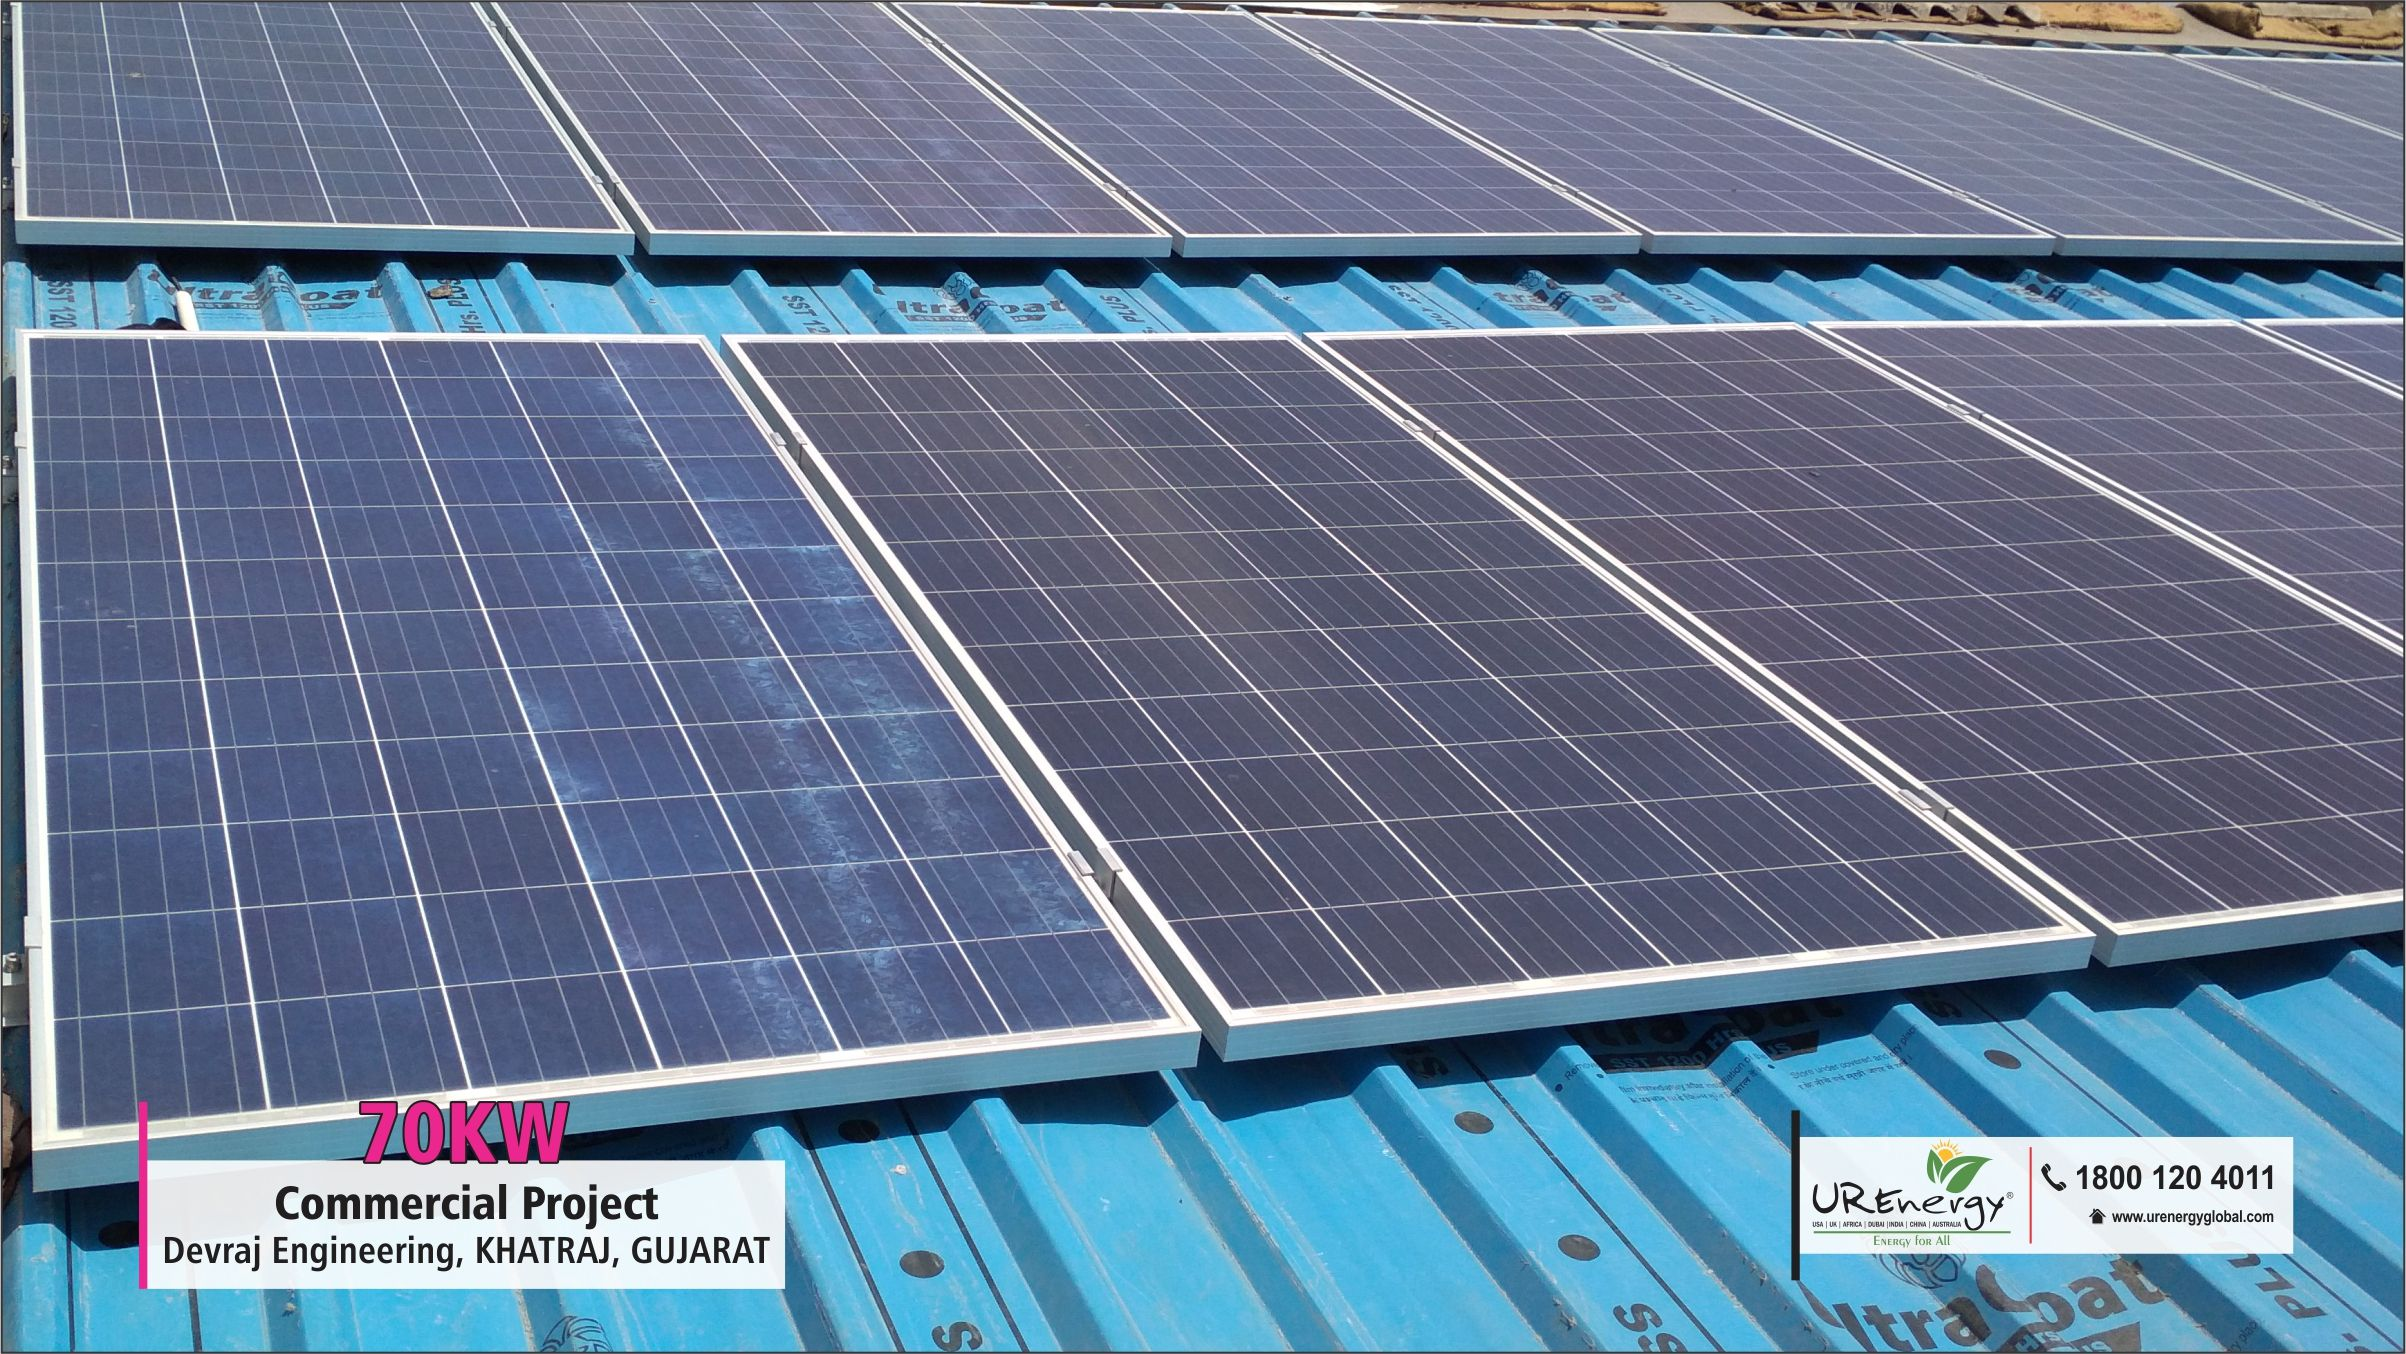 Rooftop Solar Panel Inverters Water Pump Solar Epc Gujarat India U R Energy Solar Panels Solar Energy Panels Solar